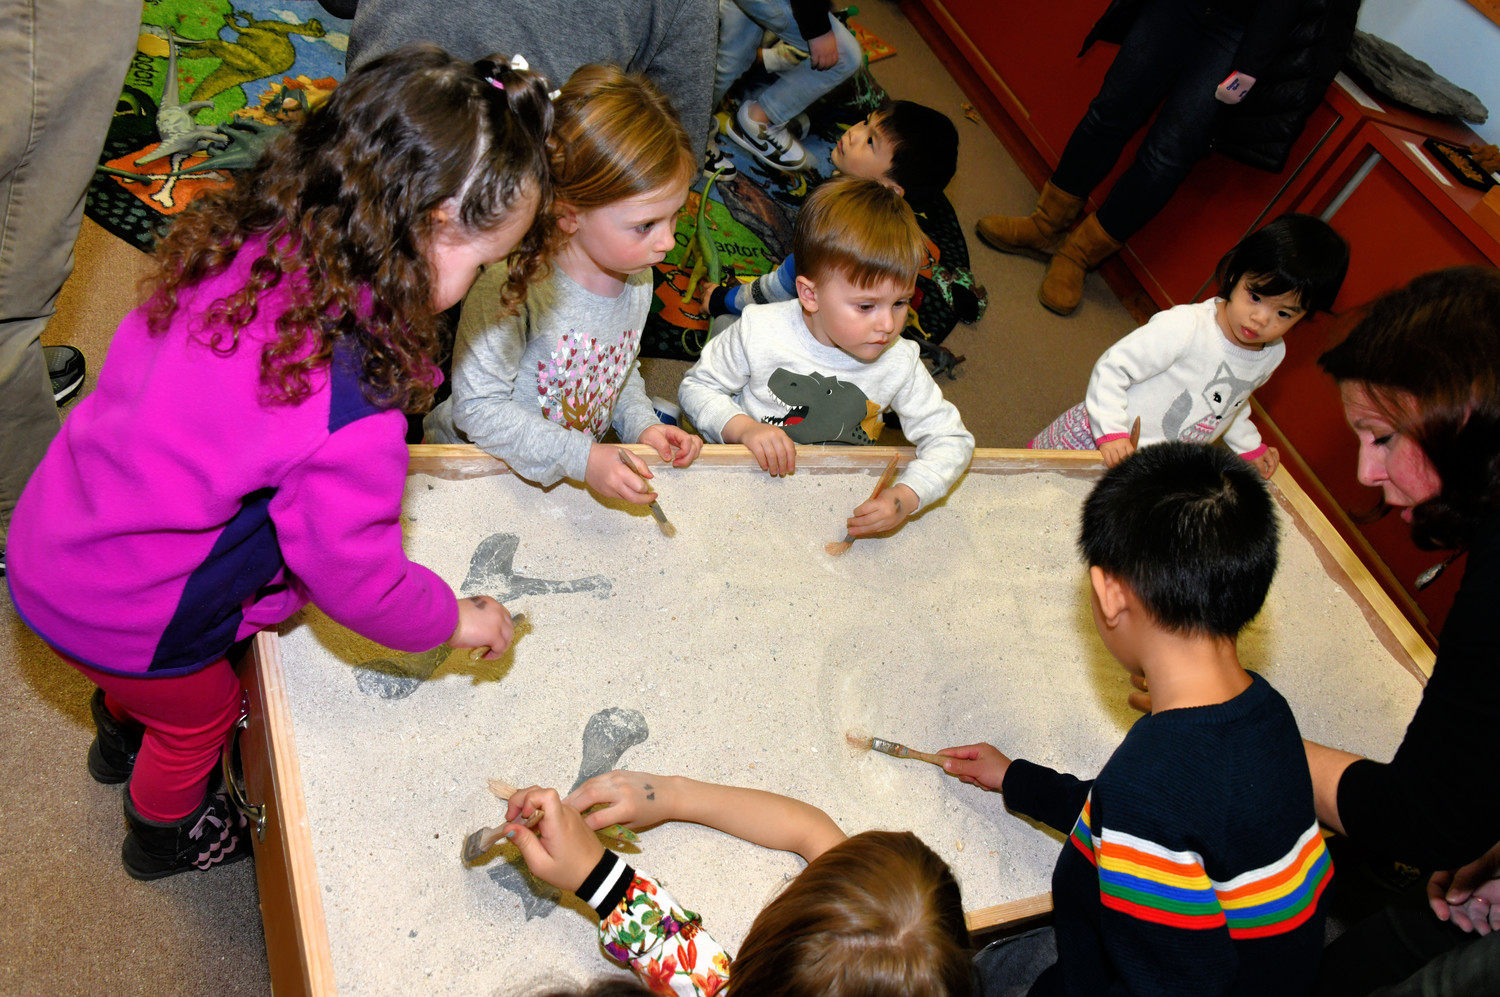 Local children became archaeologists for the day while digging for dinosaur bones.